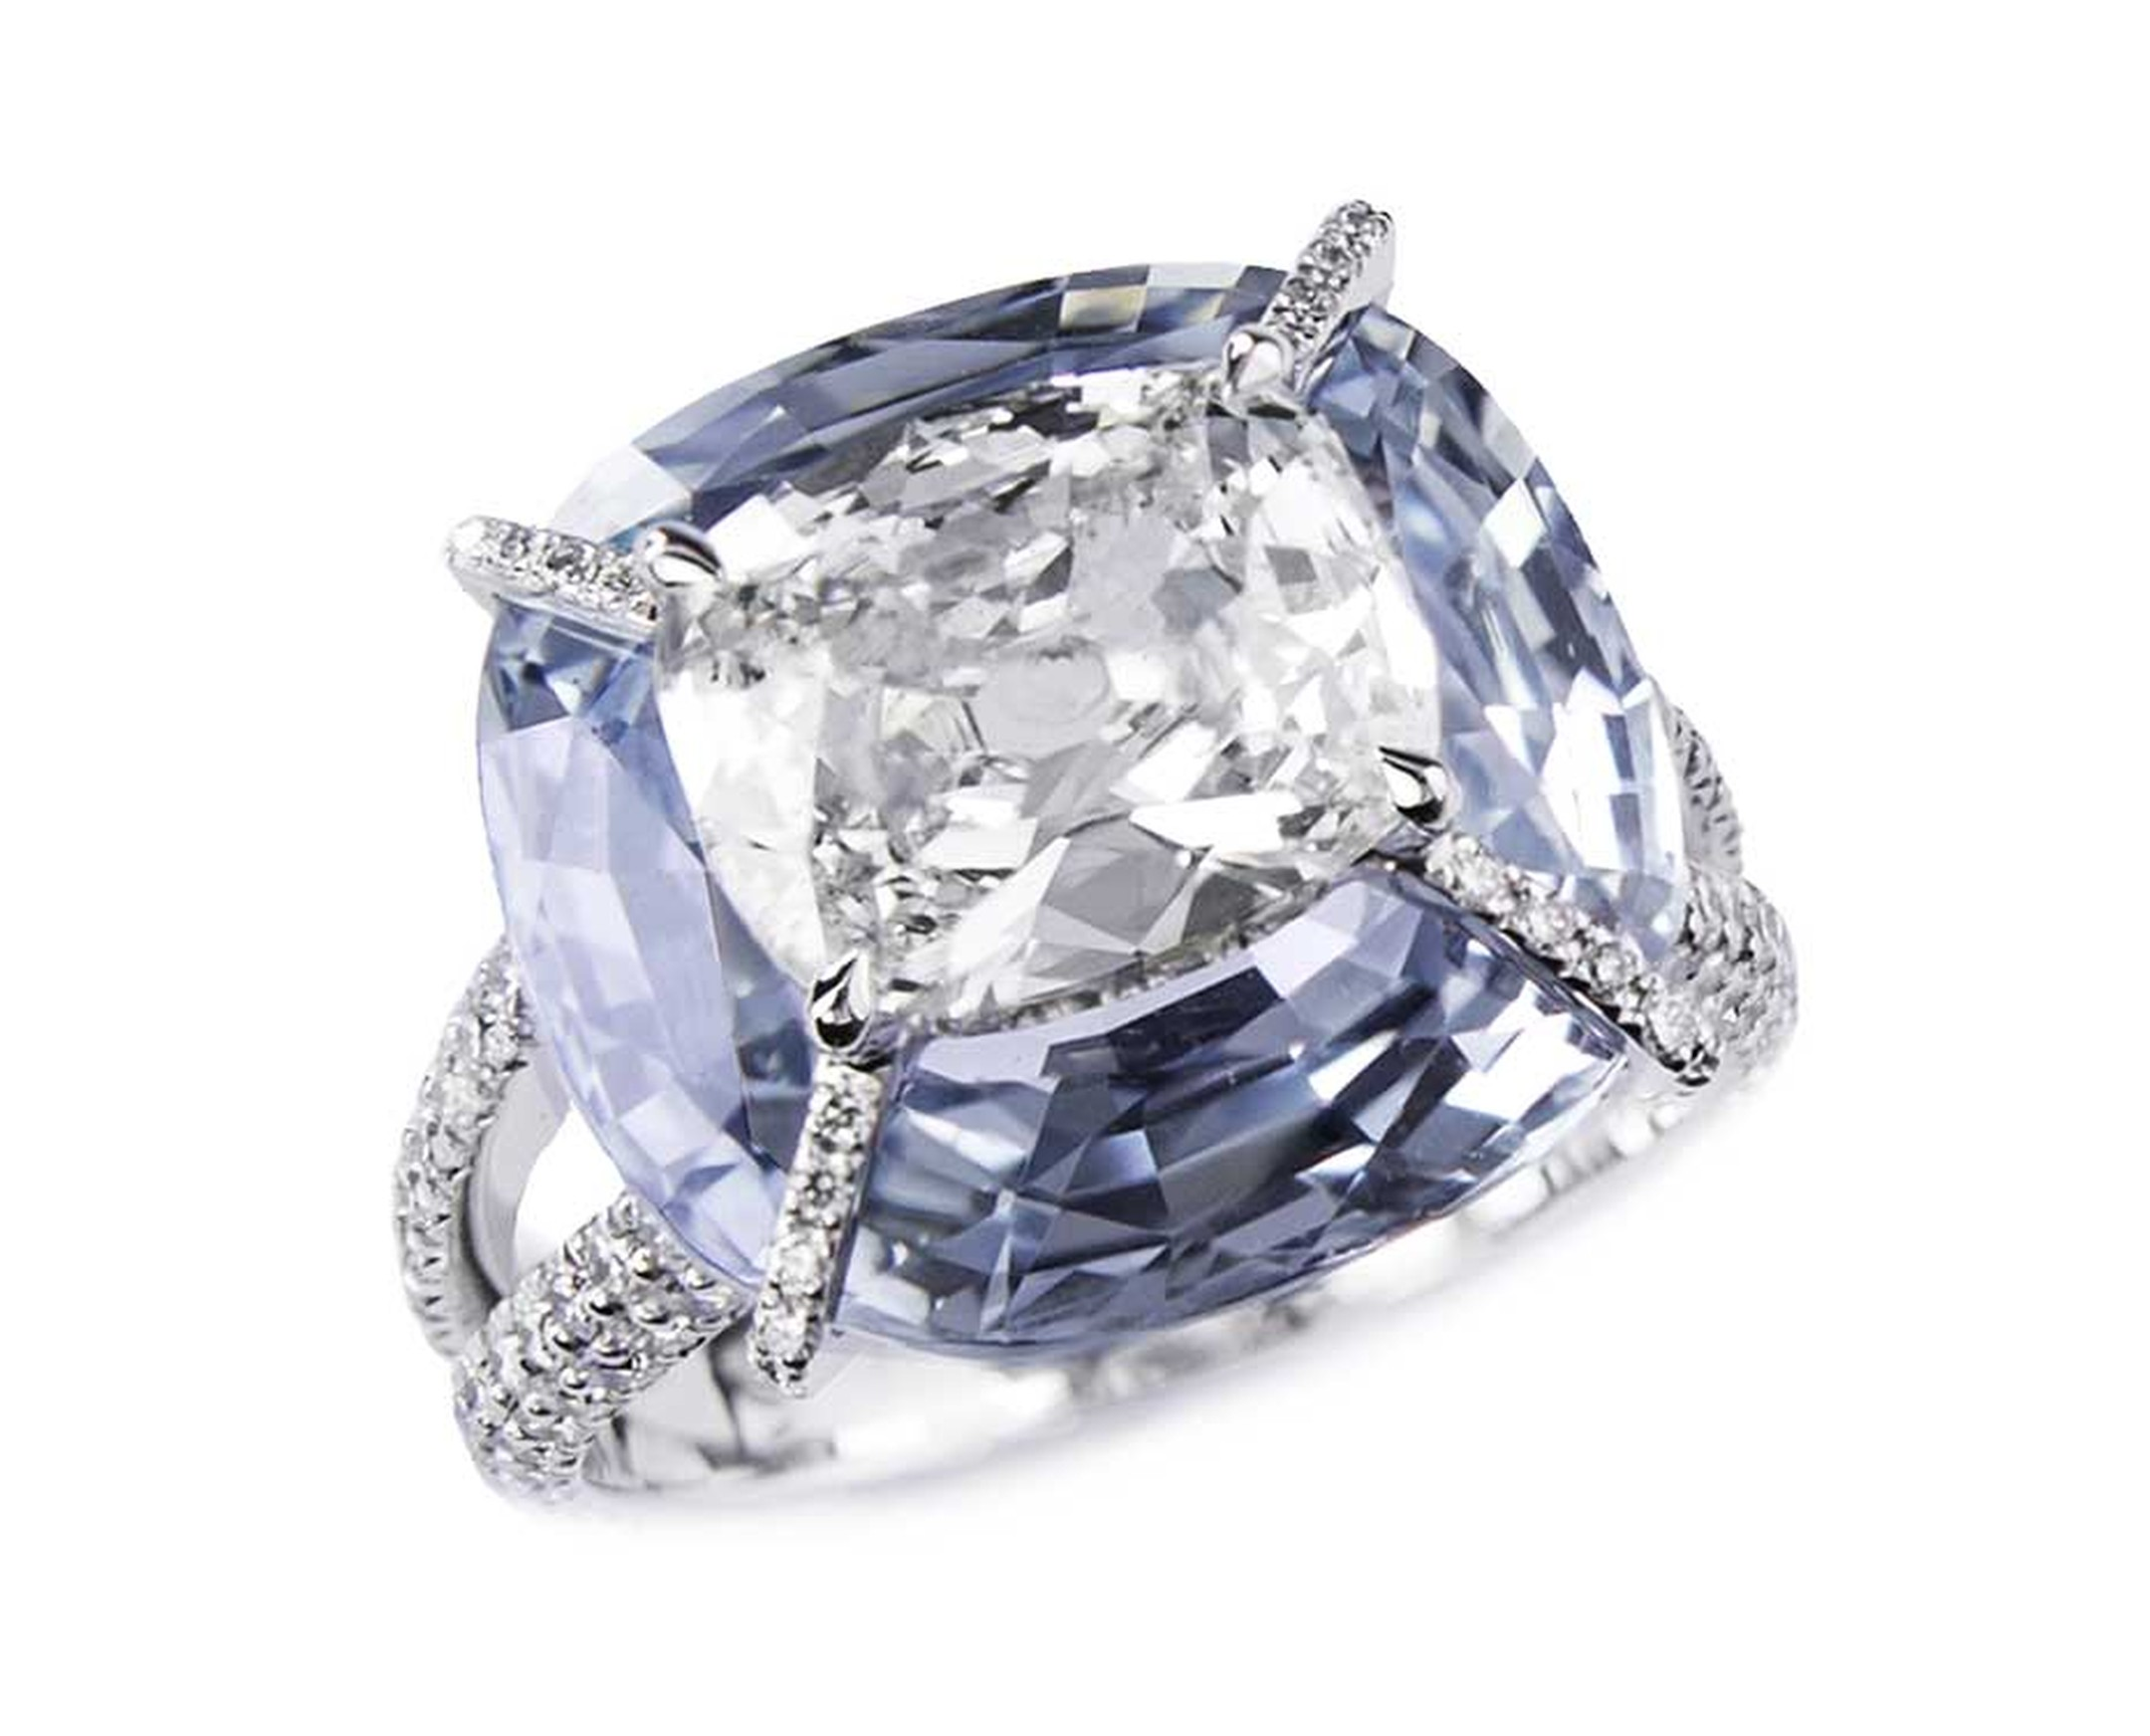 Bogh-Art Kissing Diamonds ring with a diamond set inside a sapphire